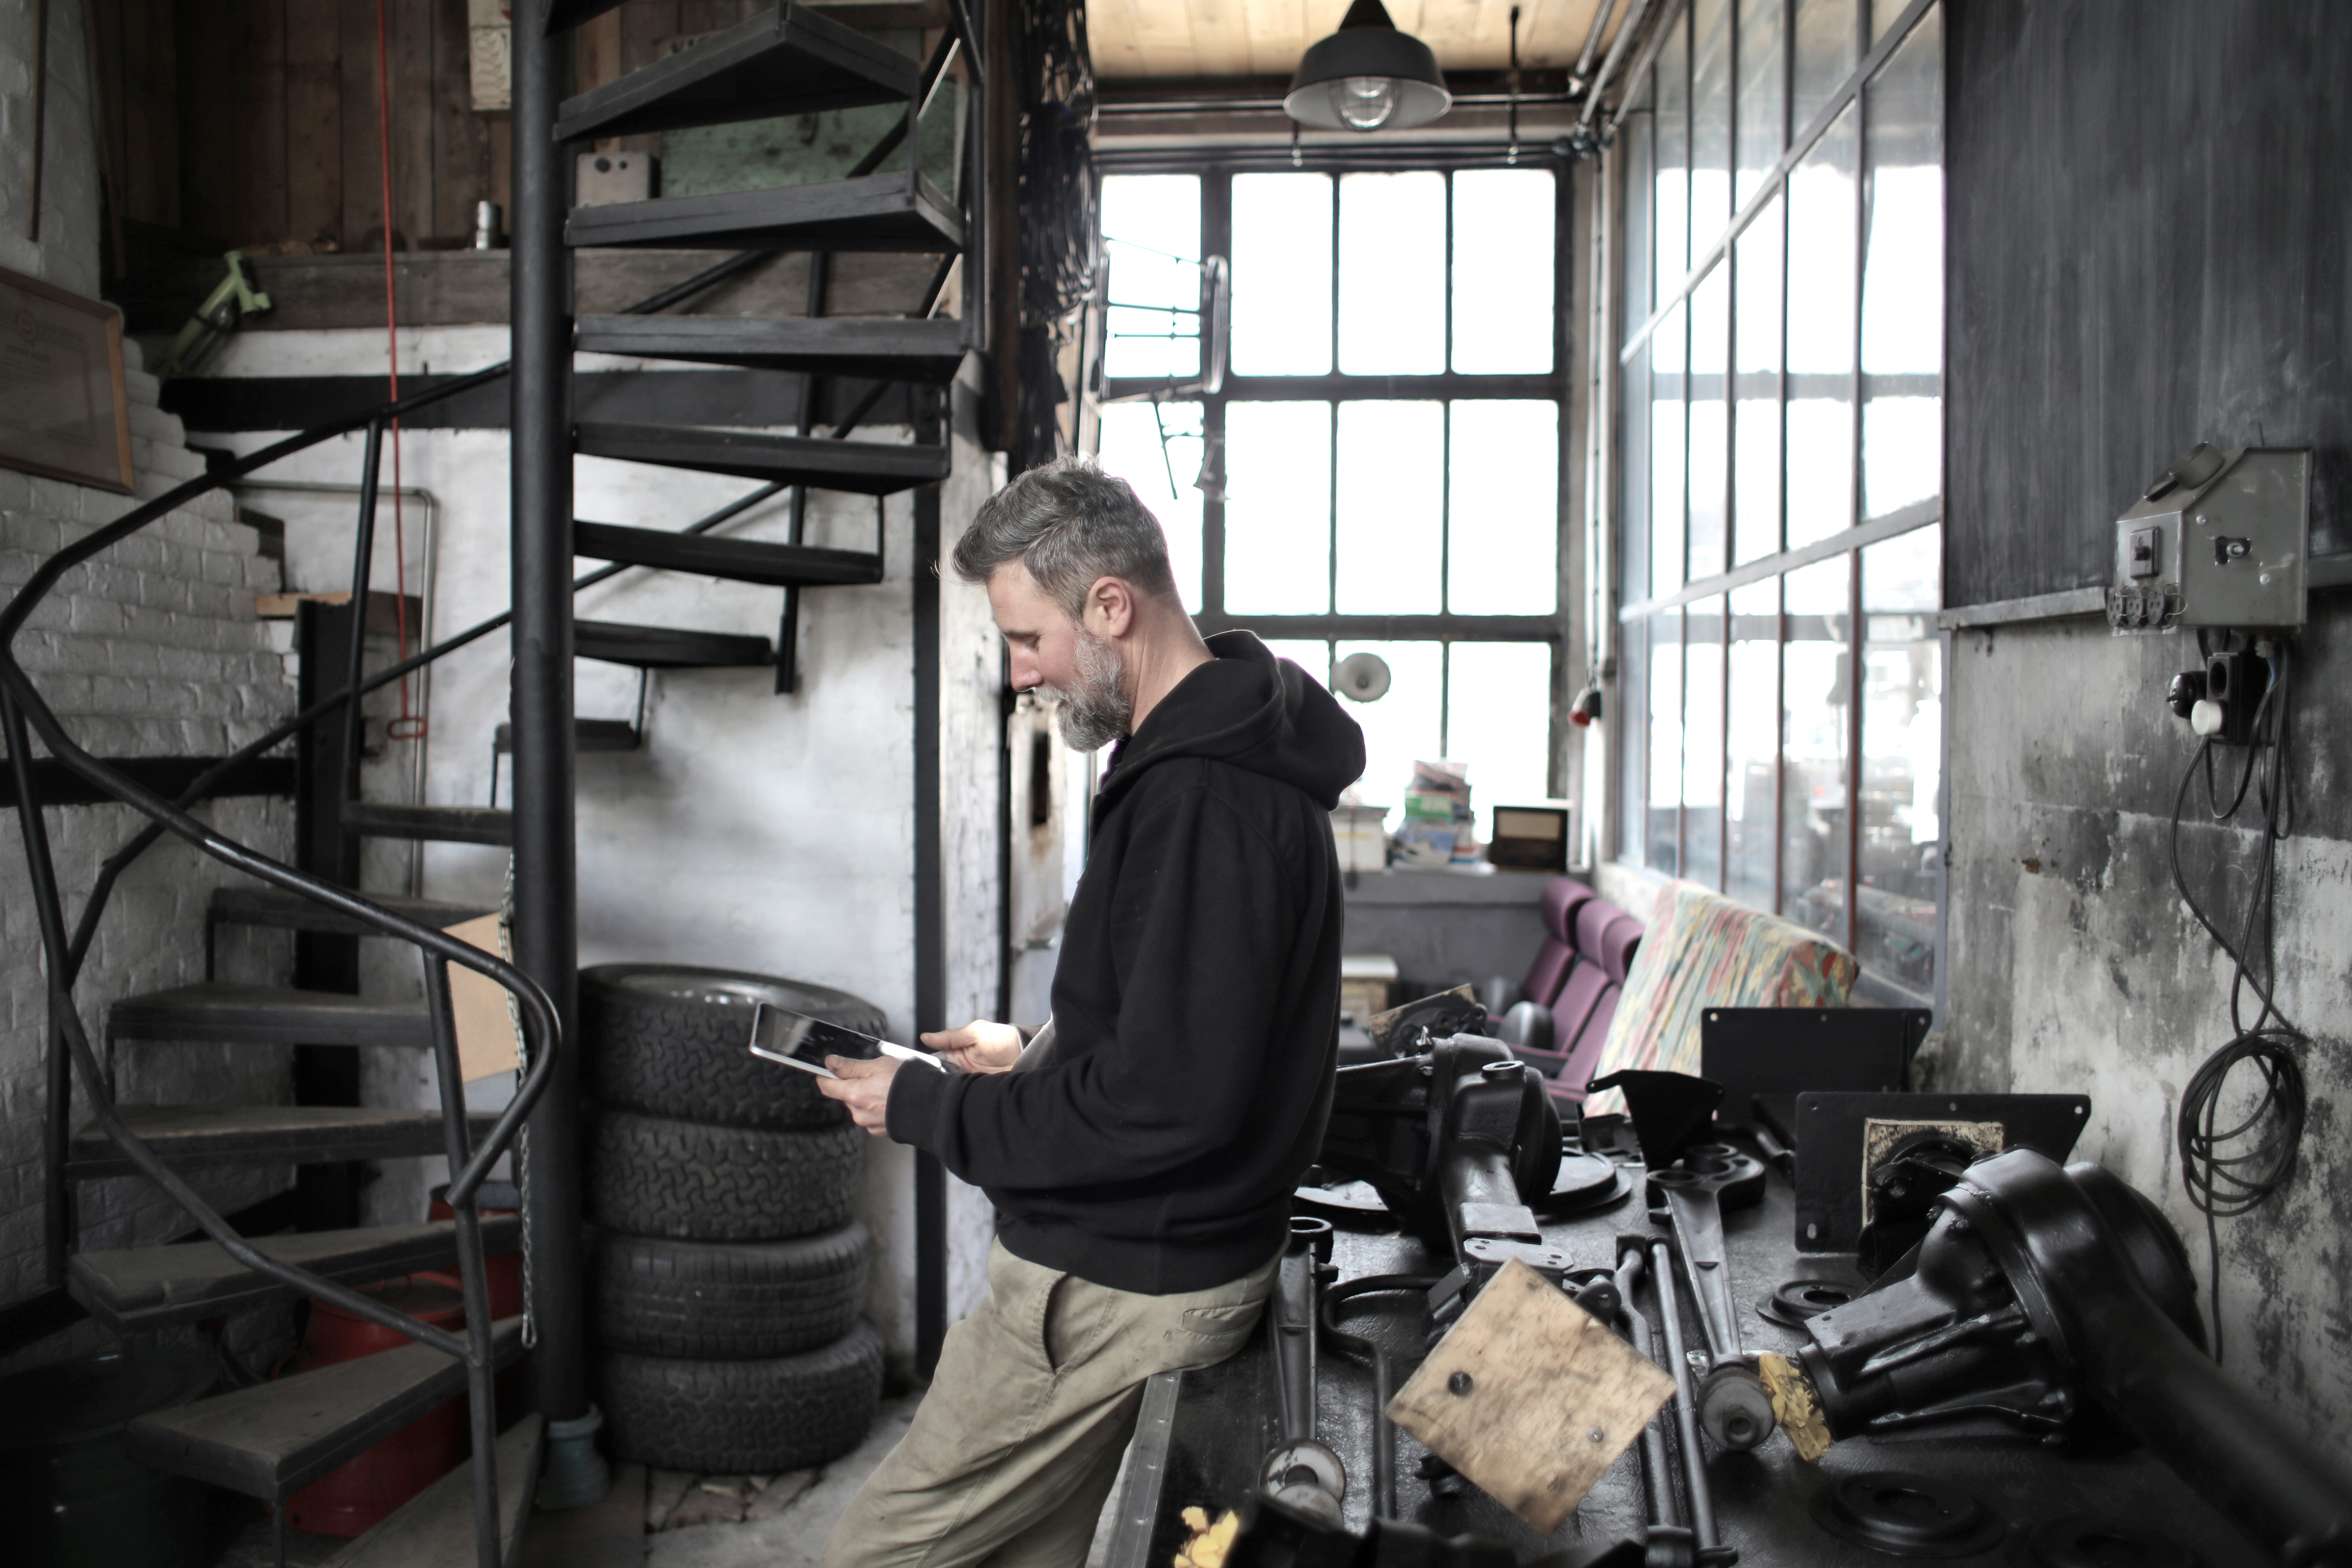 bearded worker using tablet while standing near workbench in workshop